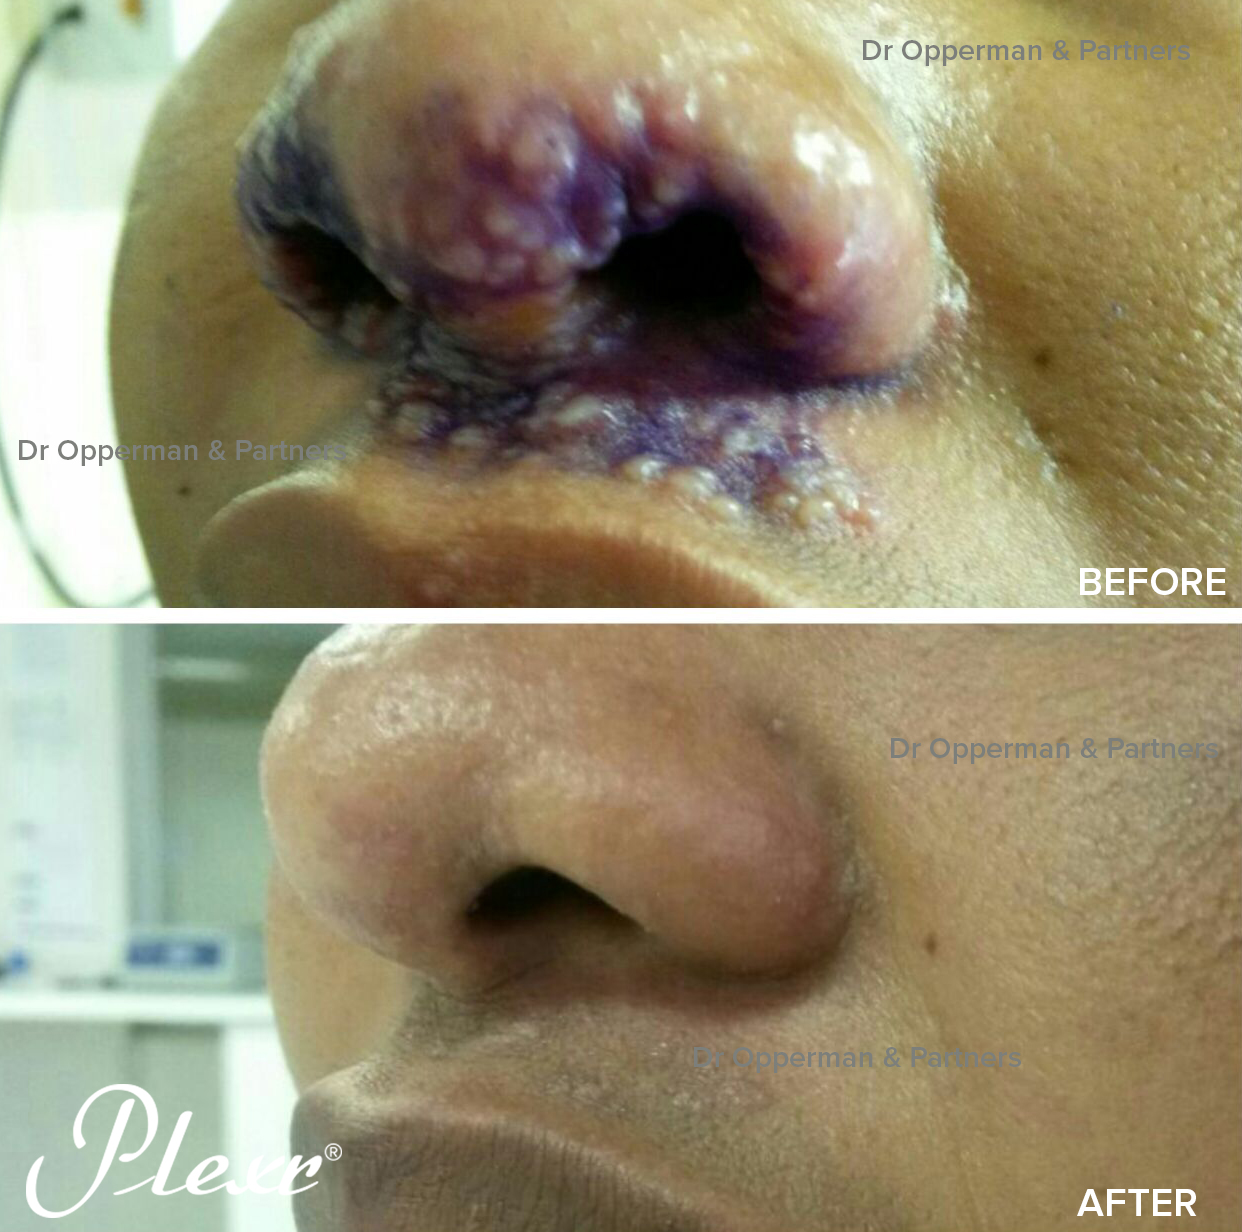 Herpes Zoster cured by single Plexr treatment